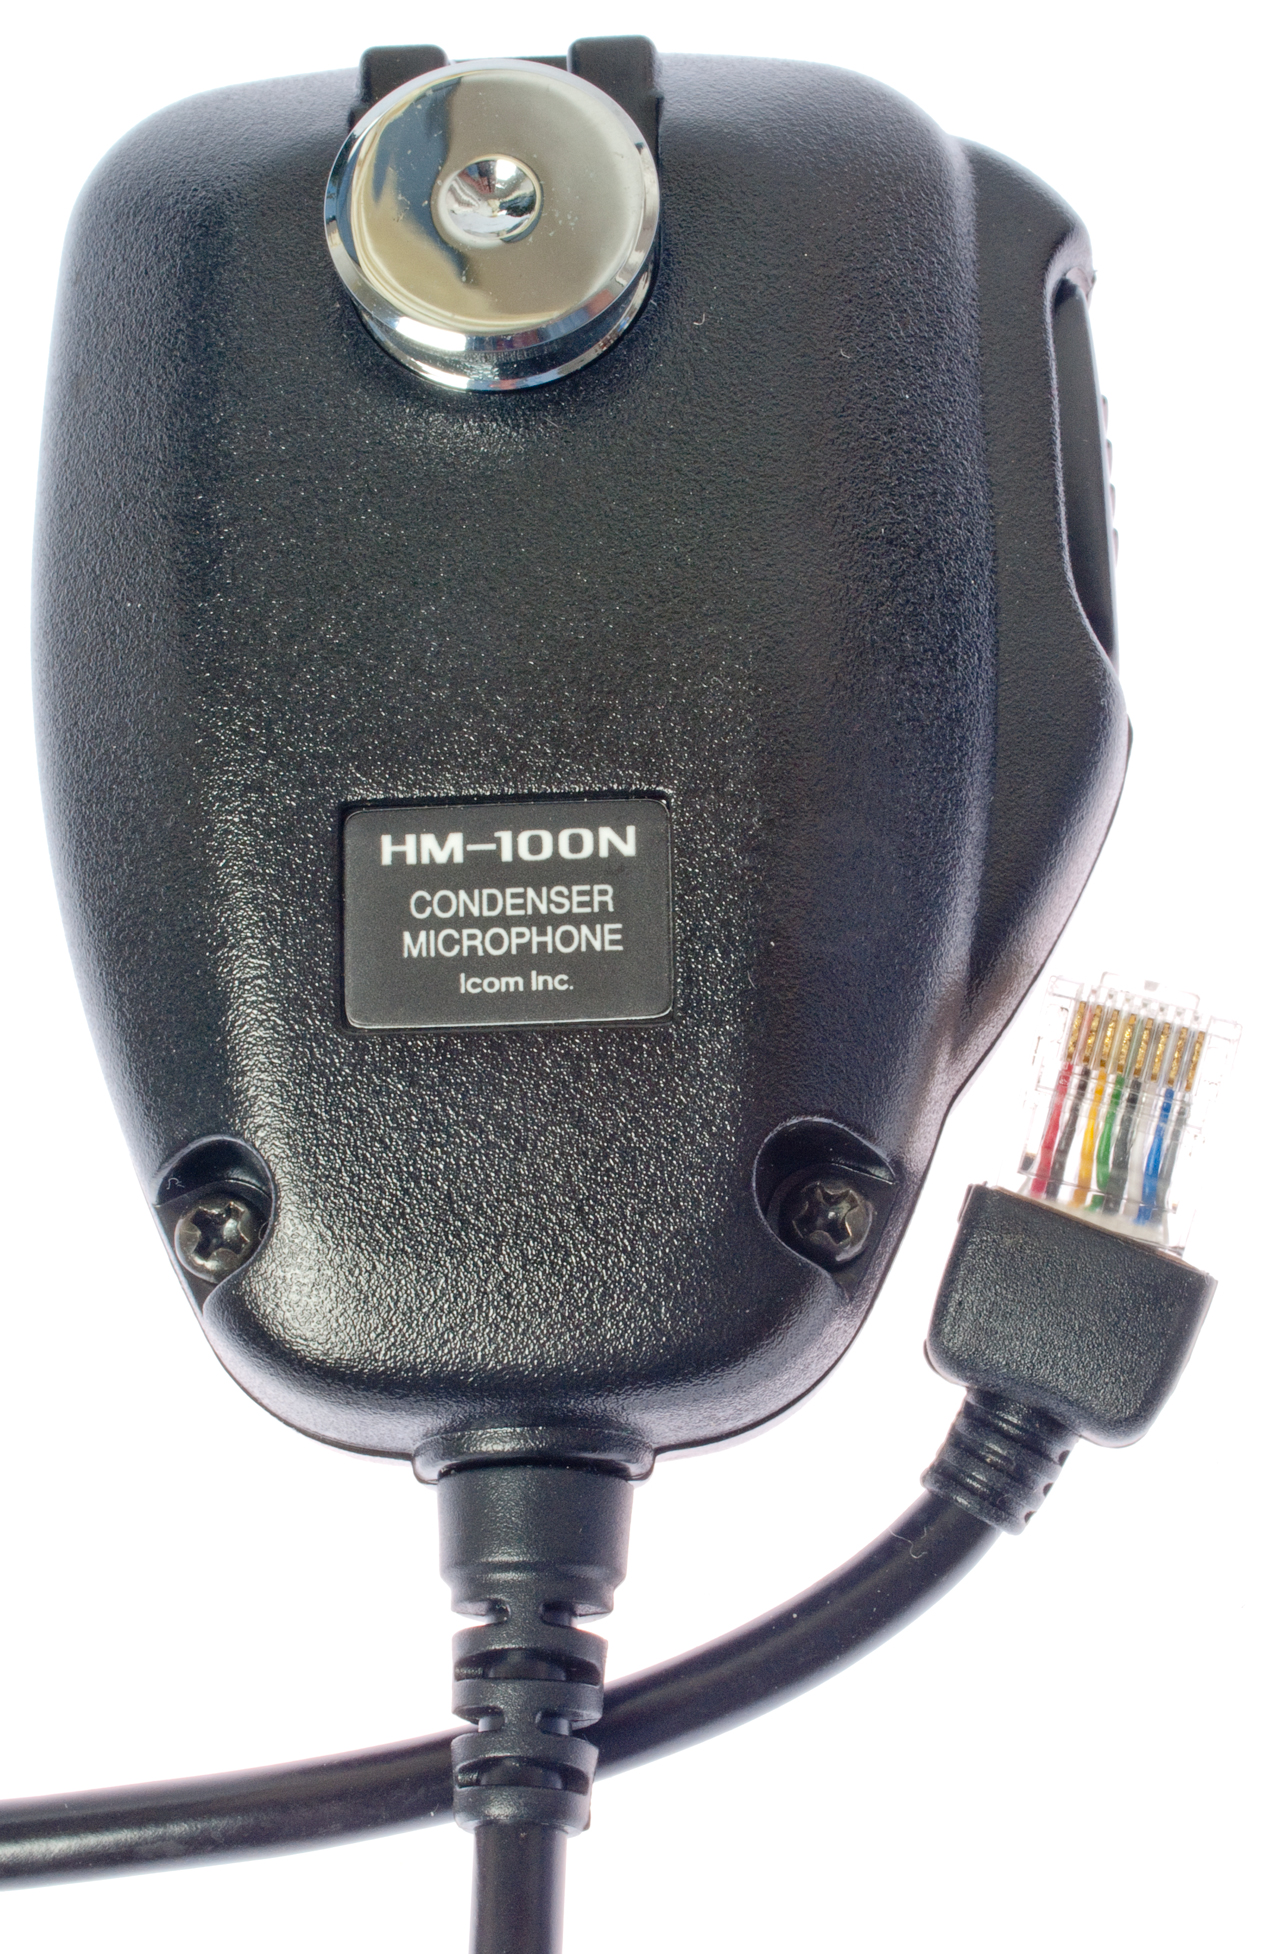 icom microphone wiring diagram wiring diagram images. Black Bedroom Furniture Sets. Home Design Ideas